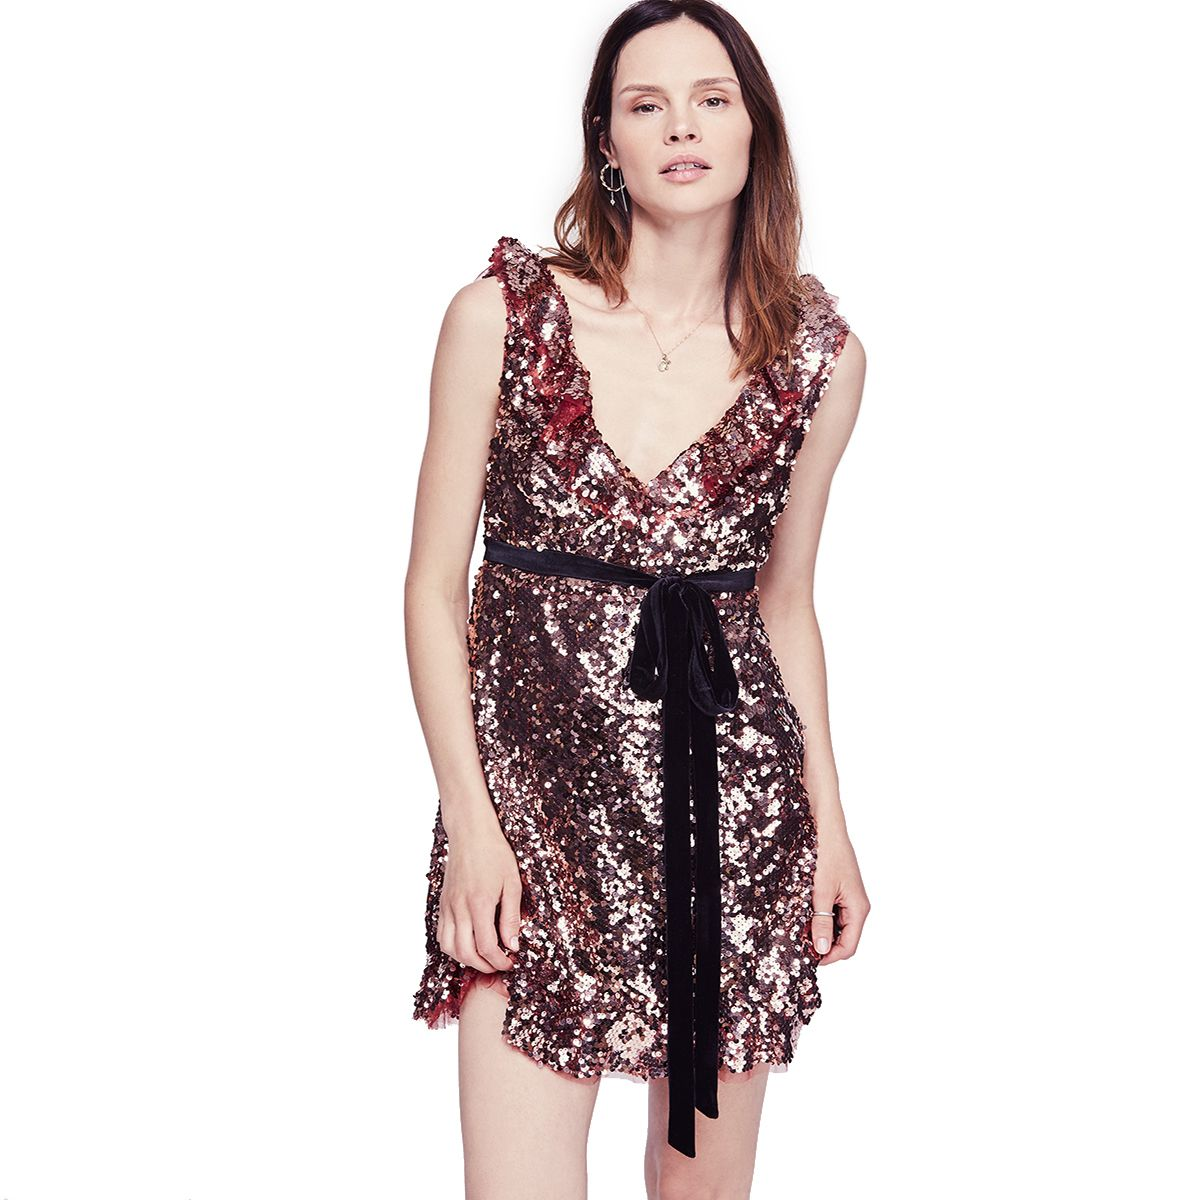 8e524ad6065 Free People Dresses for Women - Macy's